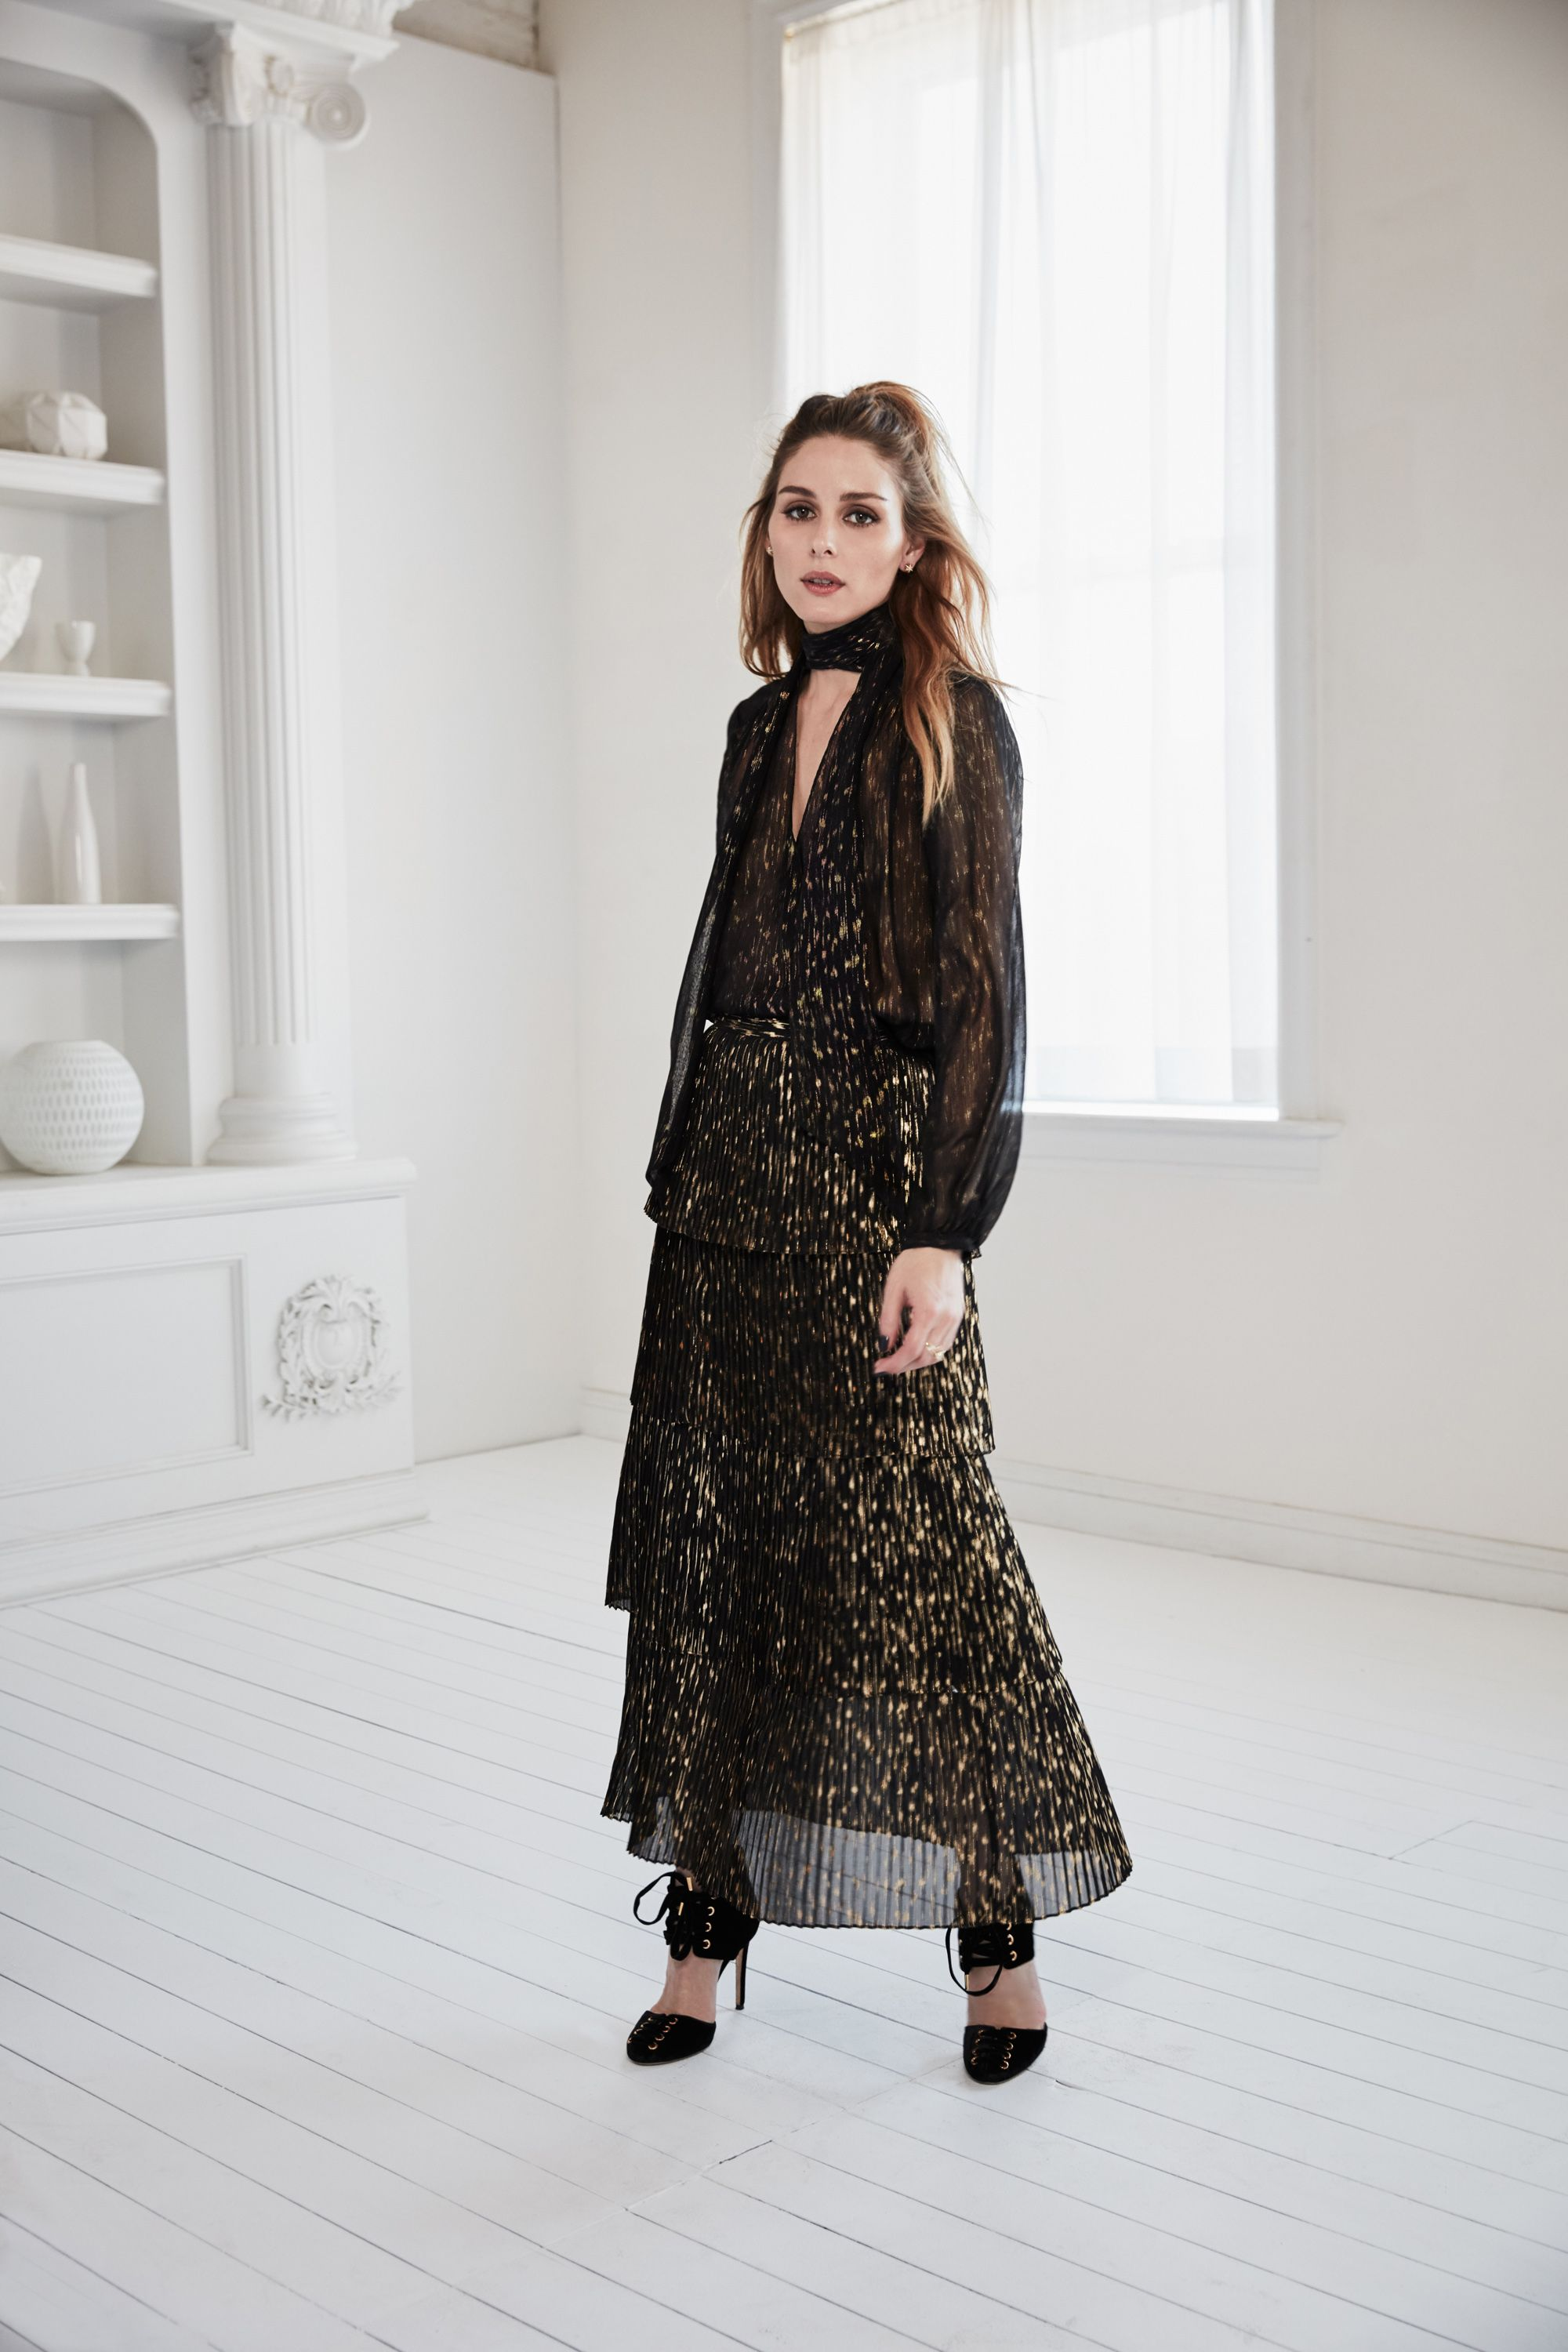 "<p>""Texture was also key. We loved pairing light, romantic elements like ruffles and lace with edgy leather or menswear-inspired tailored pieces. Materials like chiffon have a lot of movement and add an extra-pretty element to balance the menswear styles.<span class=""redactor-invisible-space"">"" —Olivia Palermo</span></p>"